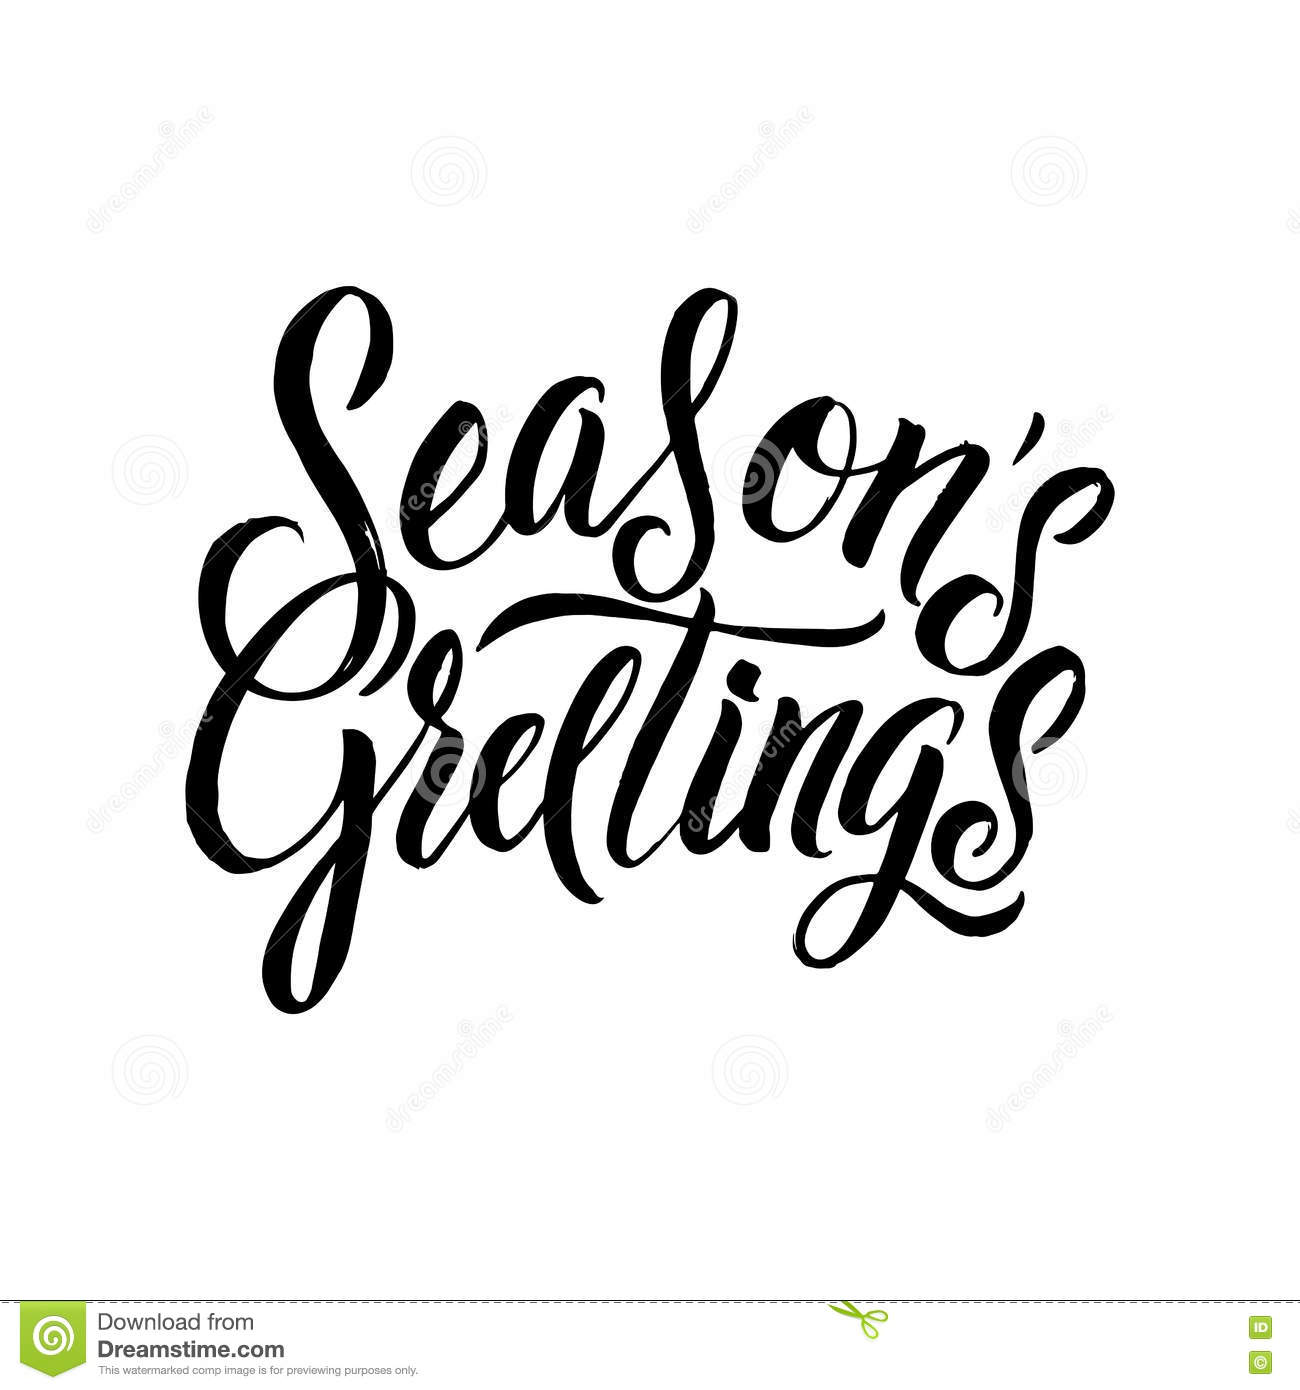 Seasons greetings calligraphy greeting card black typography on download comp m4hsunfo